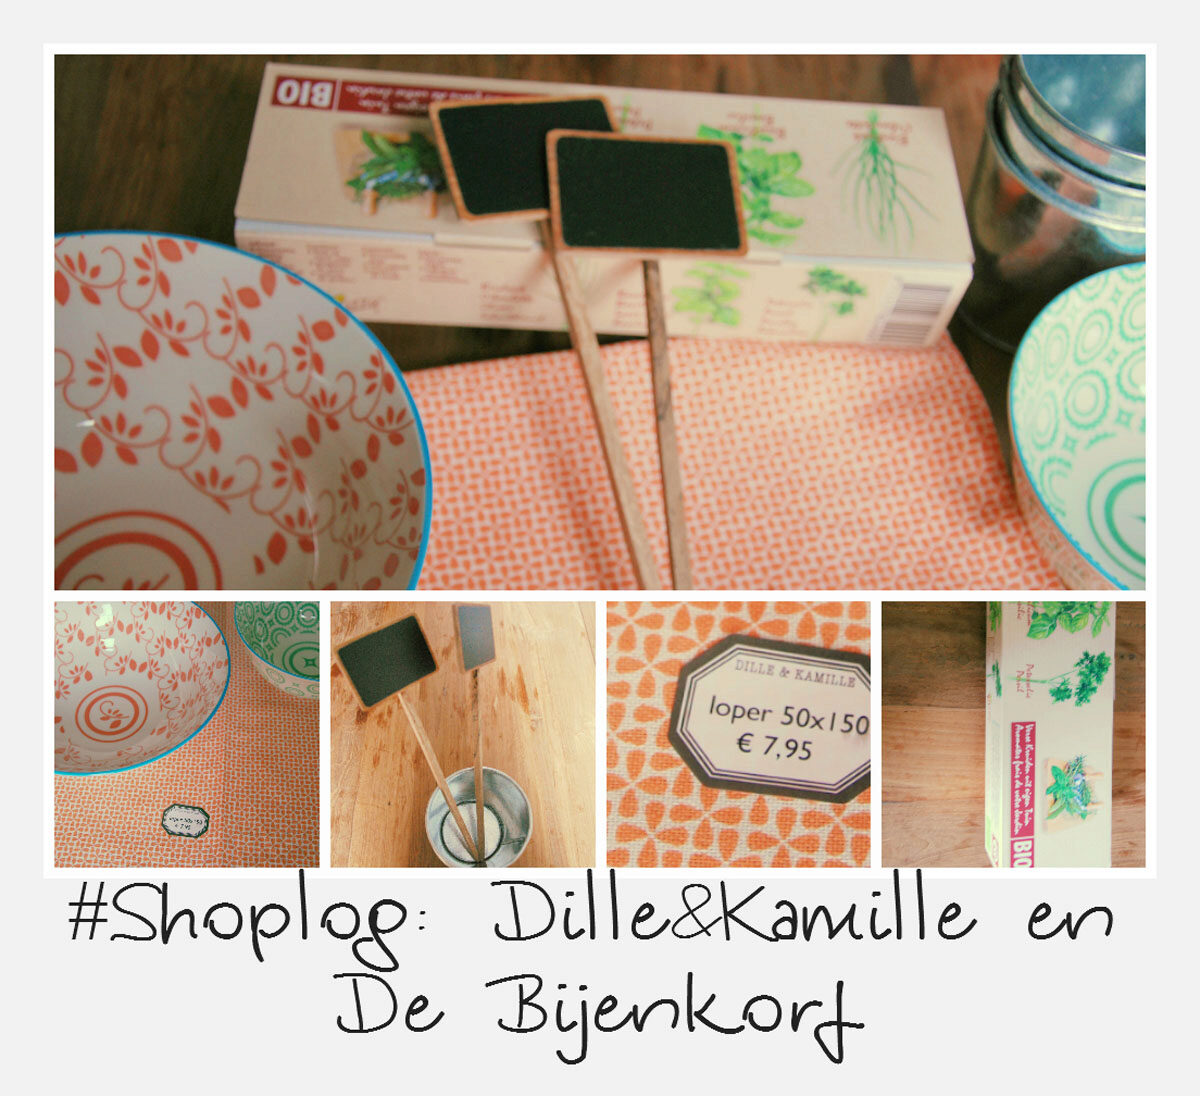 Dille Kamille Amsterdam Shoplog Dille And Kamille De Bijenkorf My Food Blog